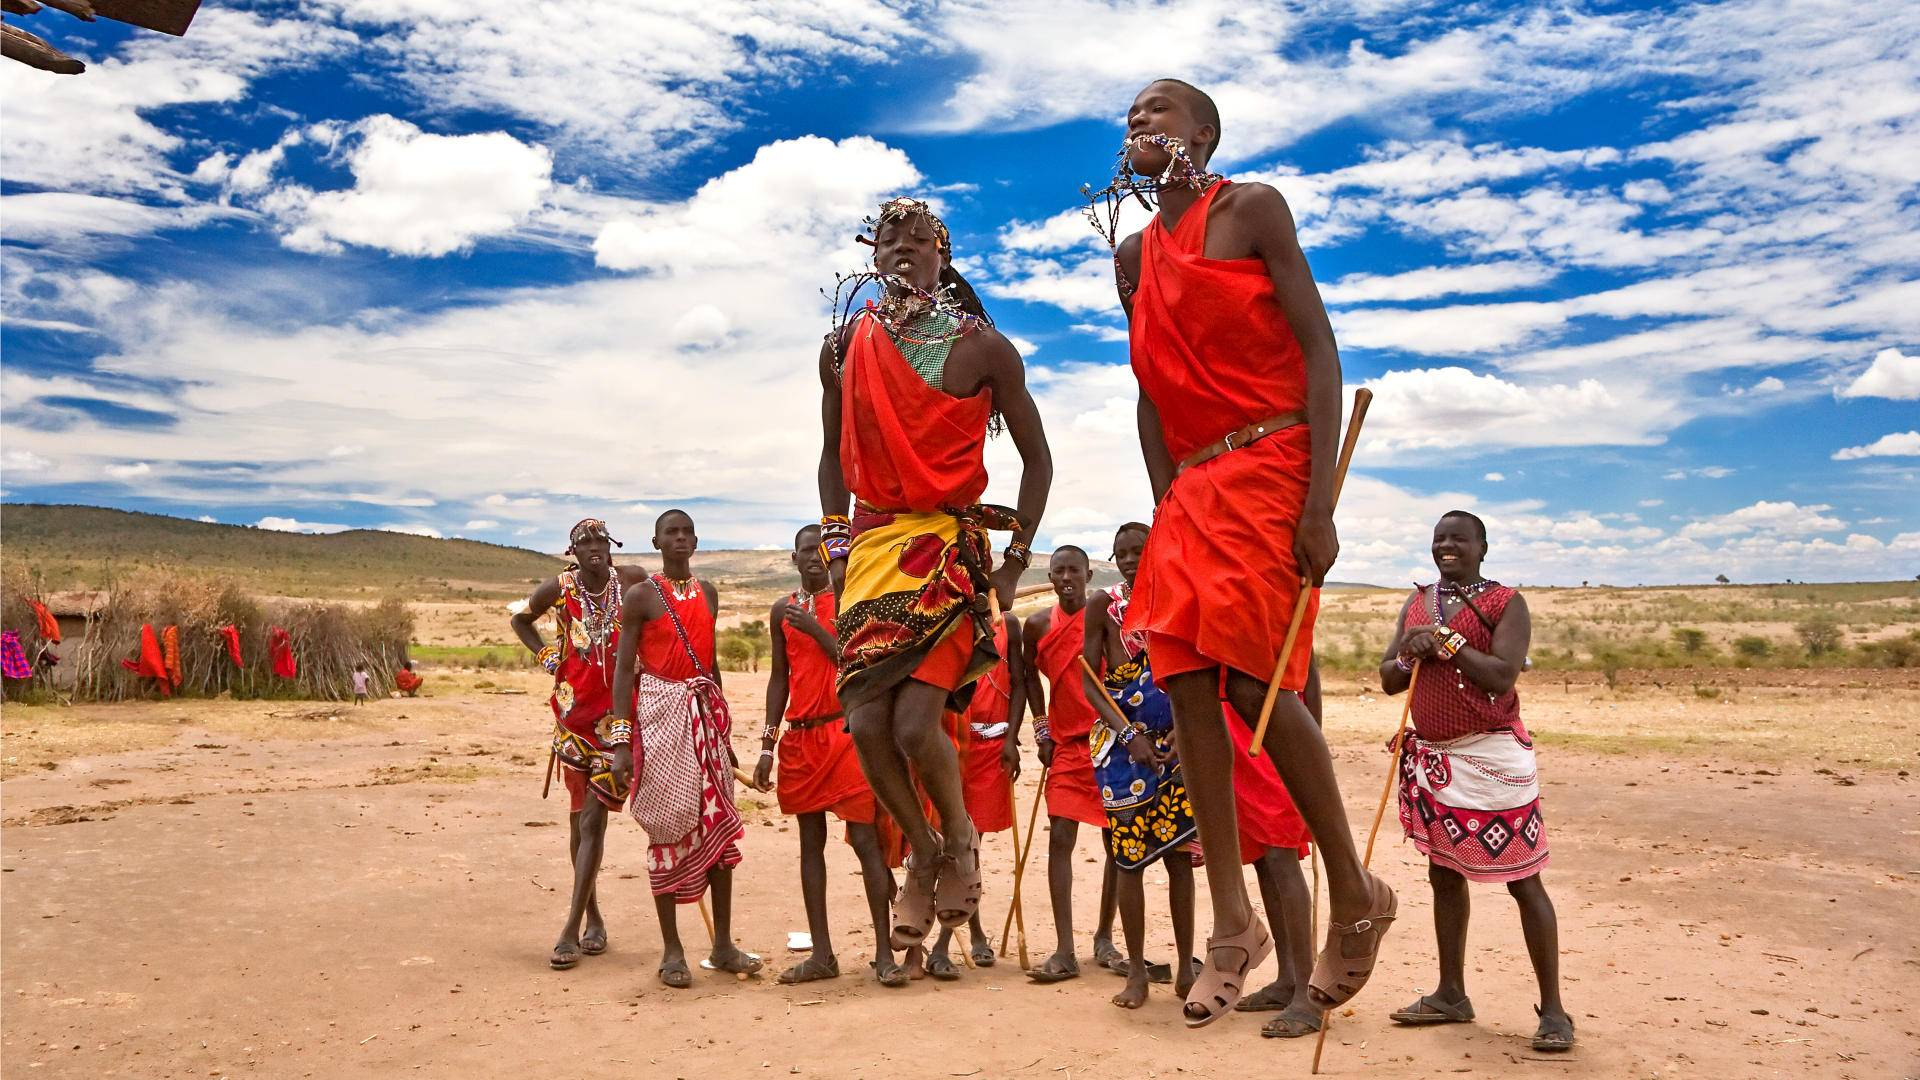 Volunteer with the Maasai Mara tribe in Kenya